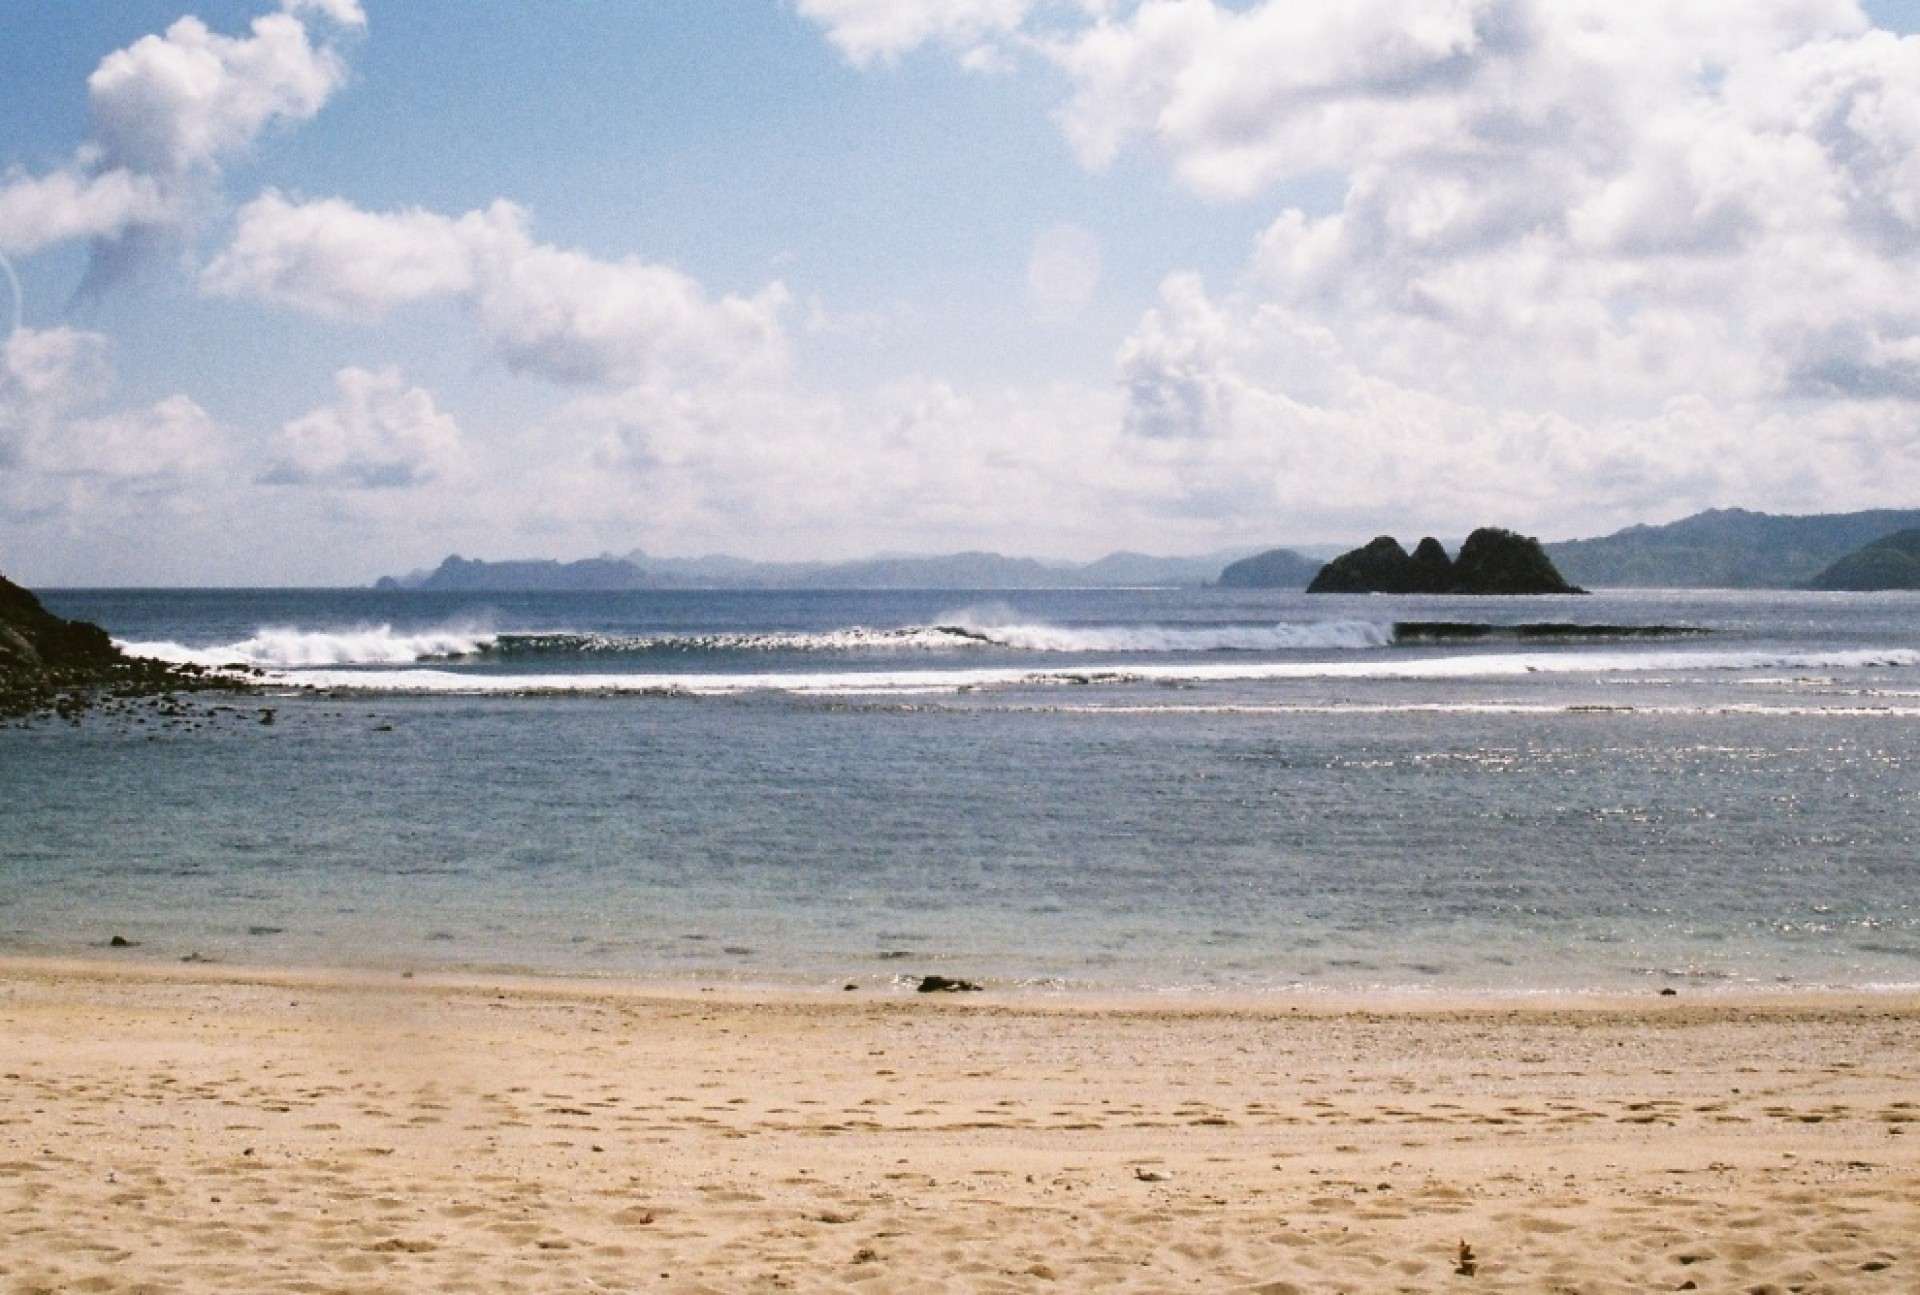 Juppy's photo of Kuta